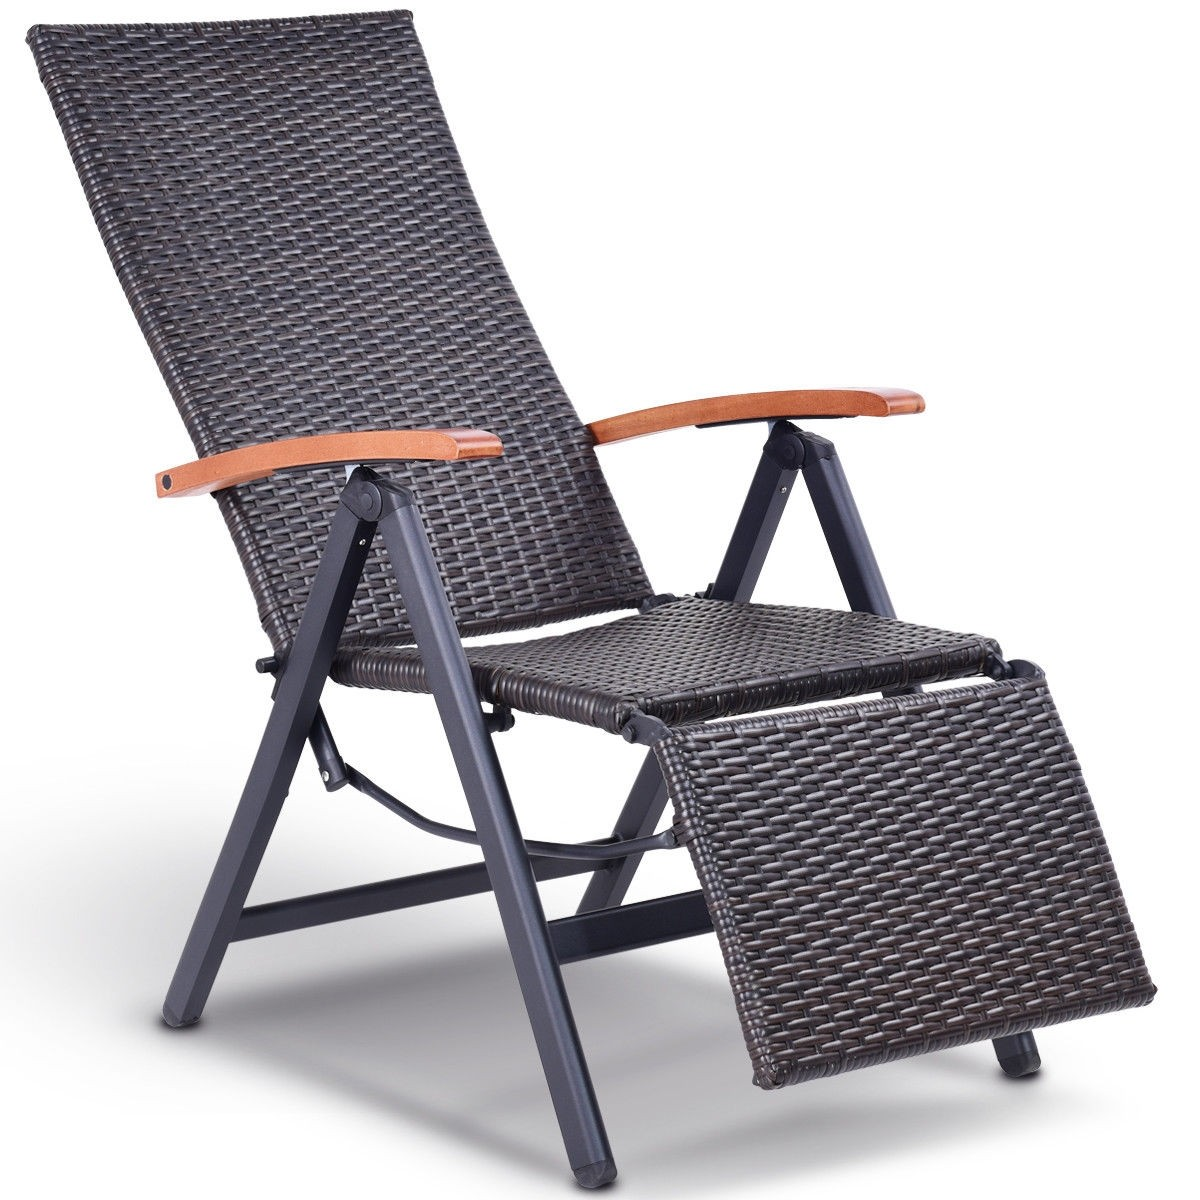 Outdoor Patio Folding Wicker Rattan